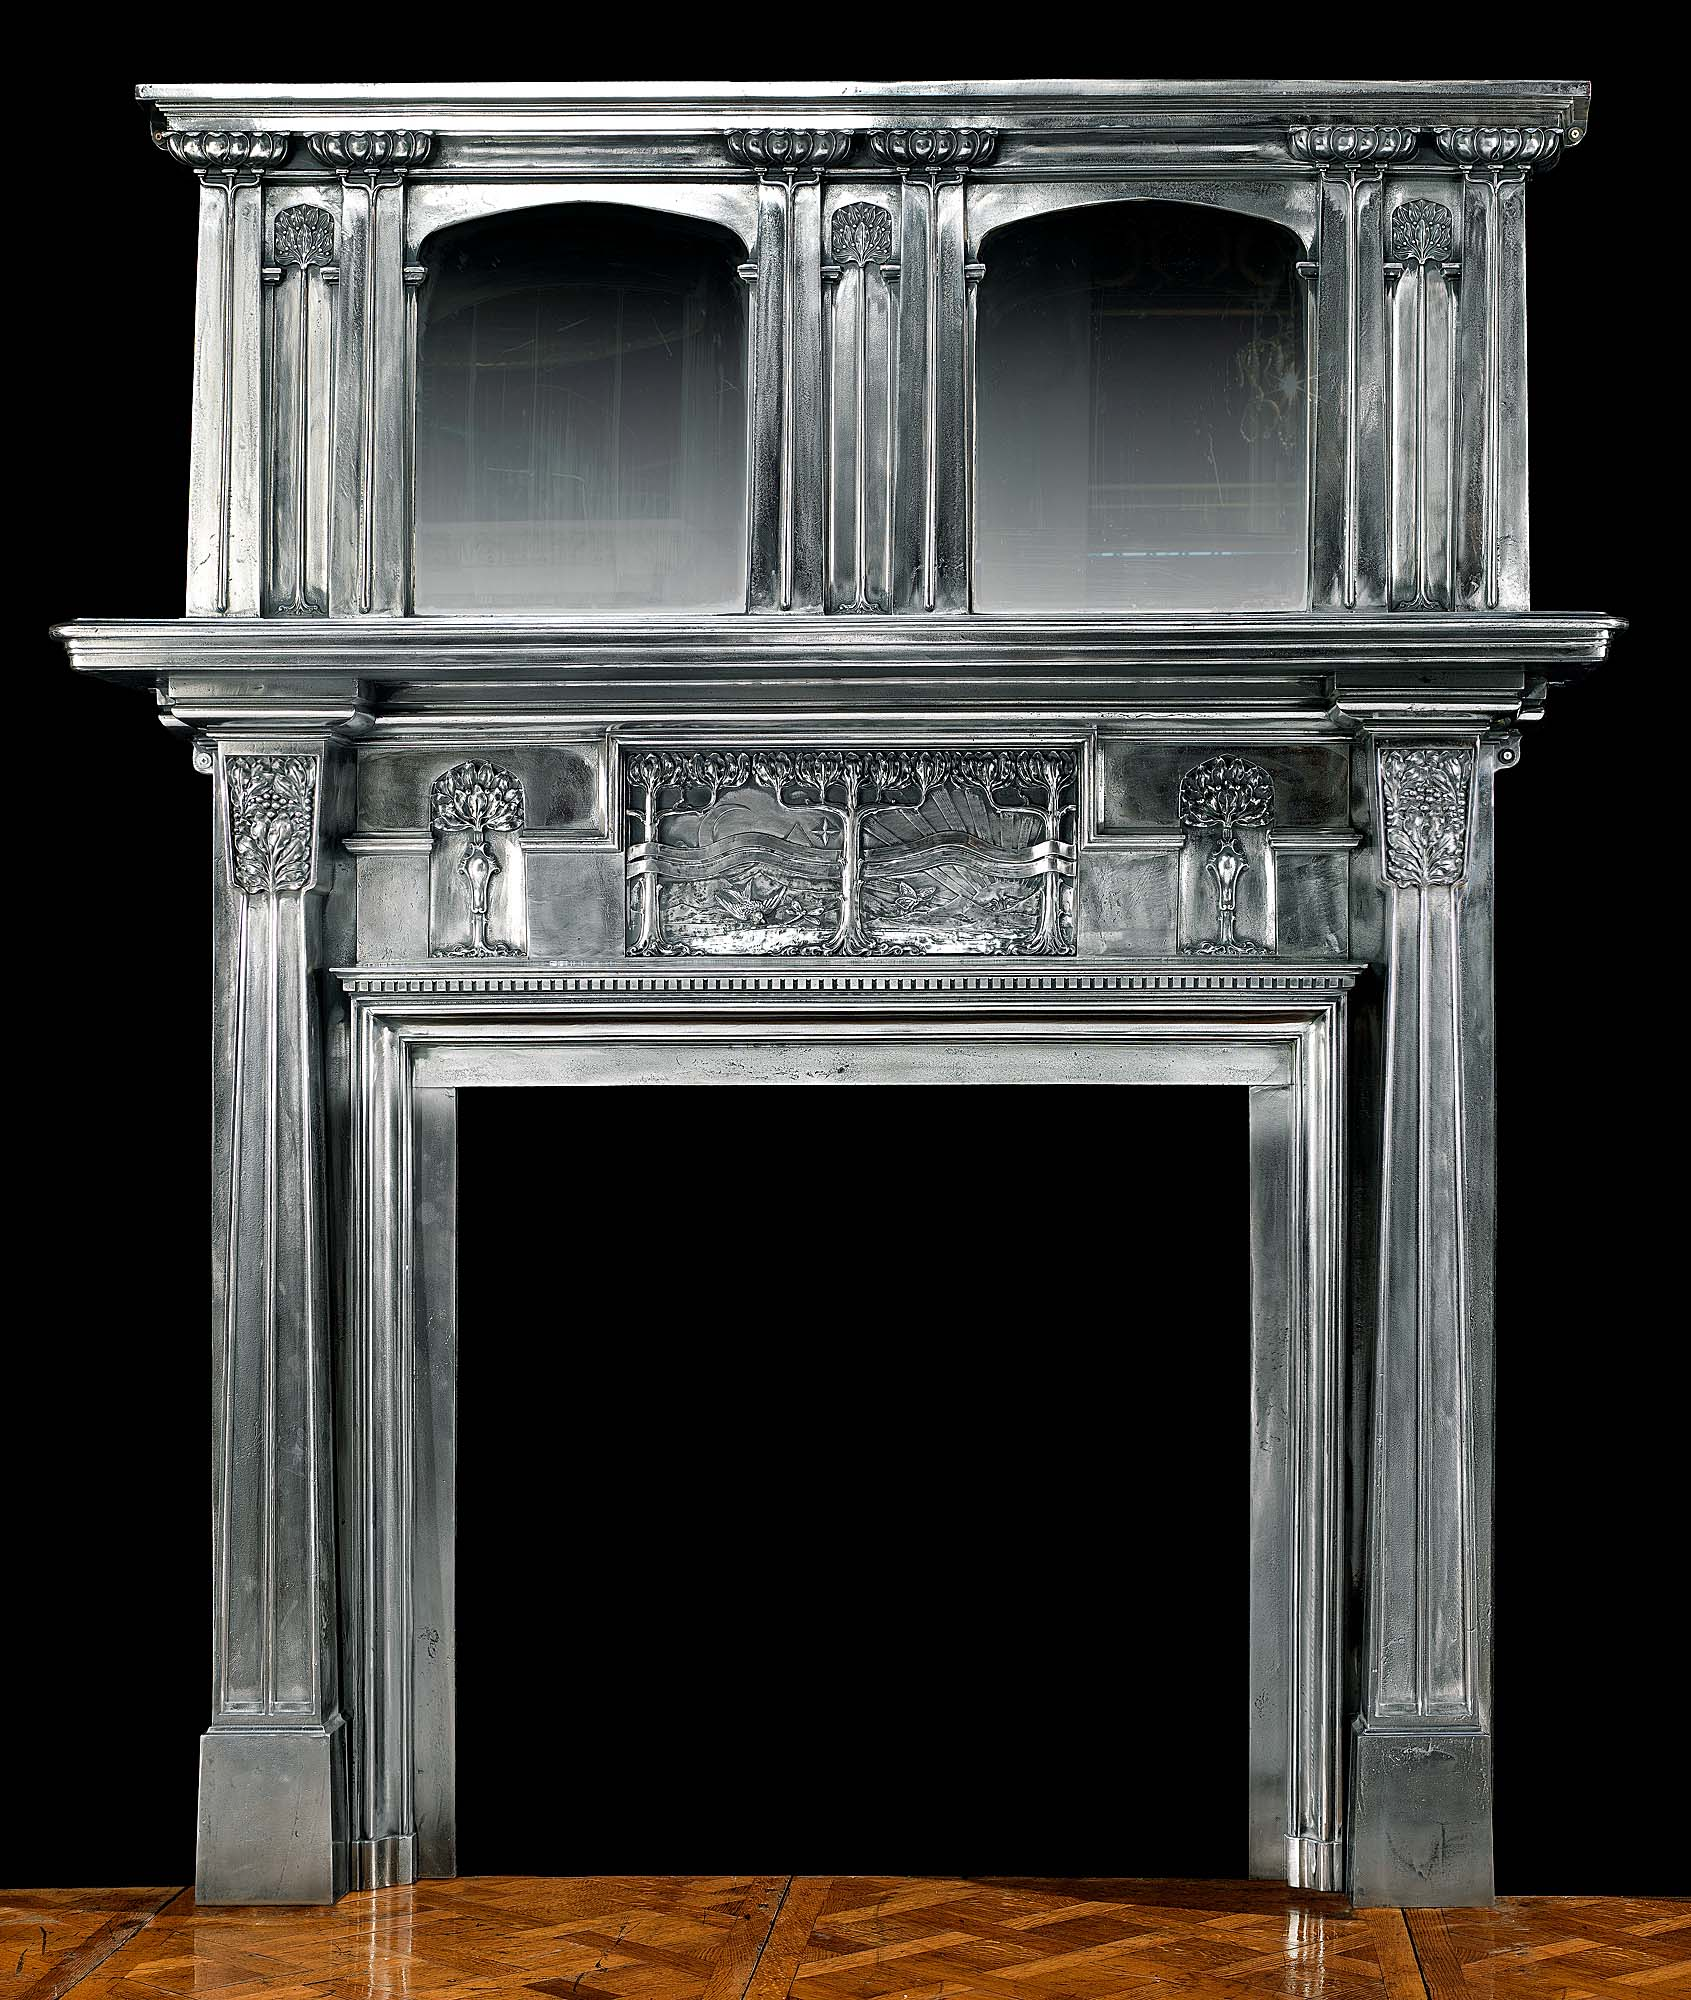 Antique Fireplace Mantels For Sale Westland London Antique Fireplaces Architectural Antiques